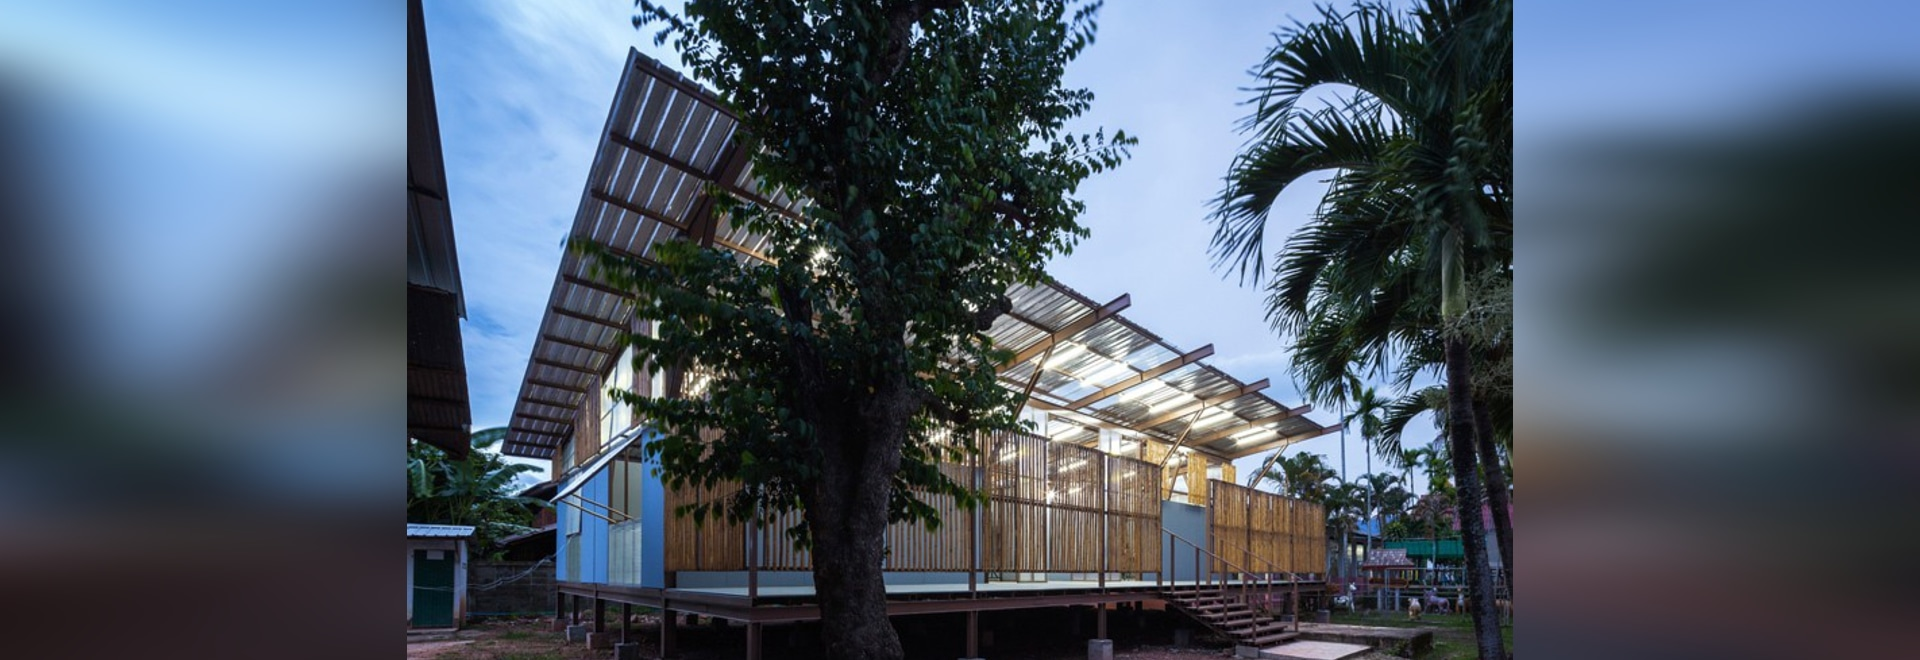 junsekino elevates and rebuilds rural school after earthquake in thailand